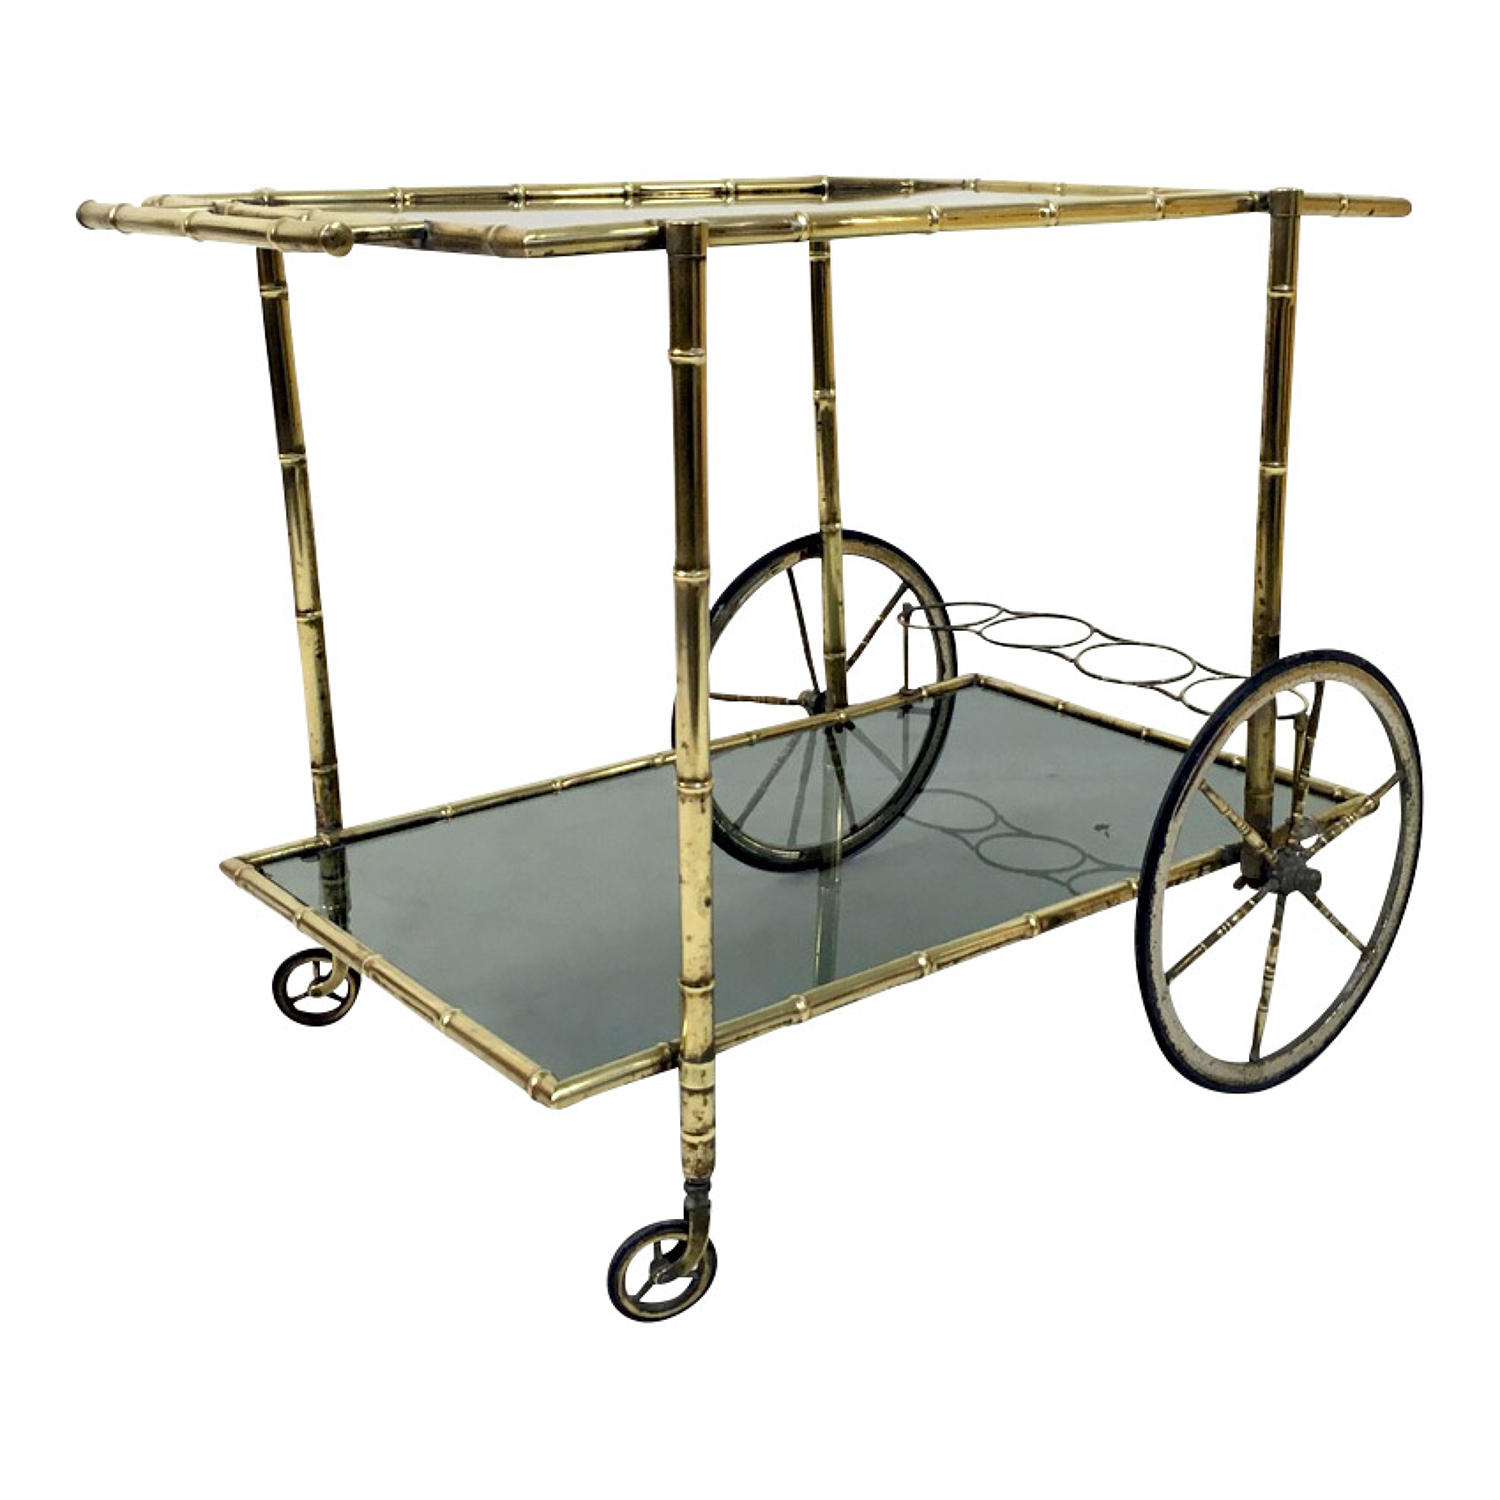 Brass bamboo drinks trolley or bar cart